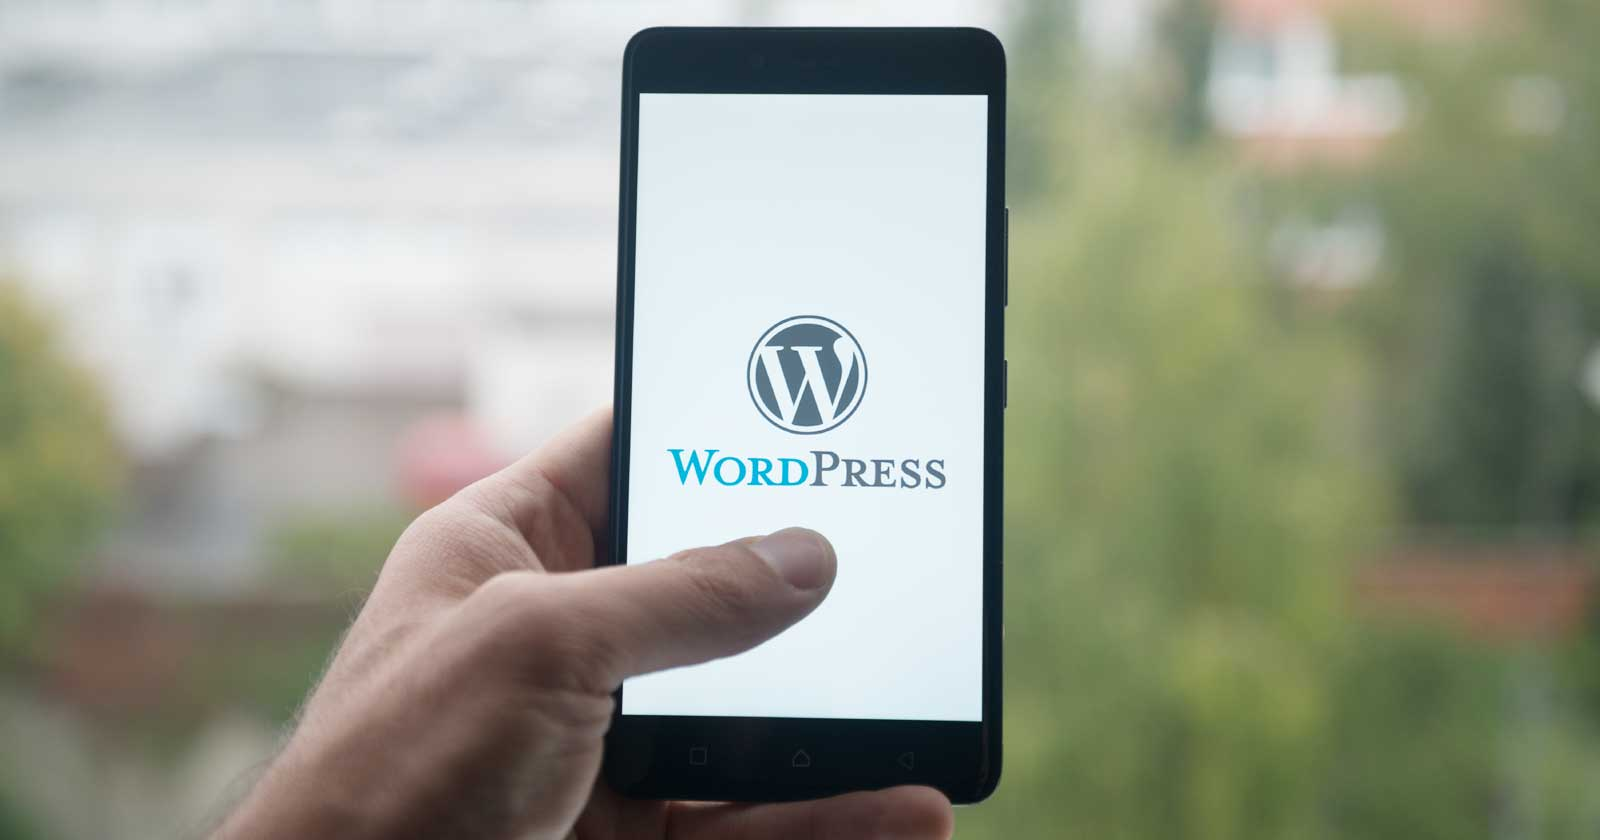 WordPress 5.9 May Boost a Core Web Vitals Metric by Up to 33% - Search Engine Journal